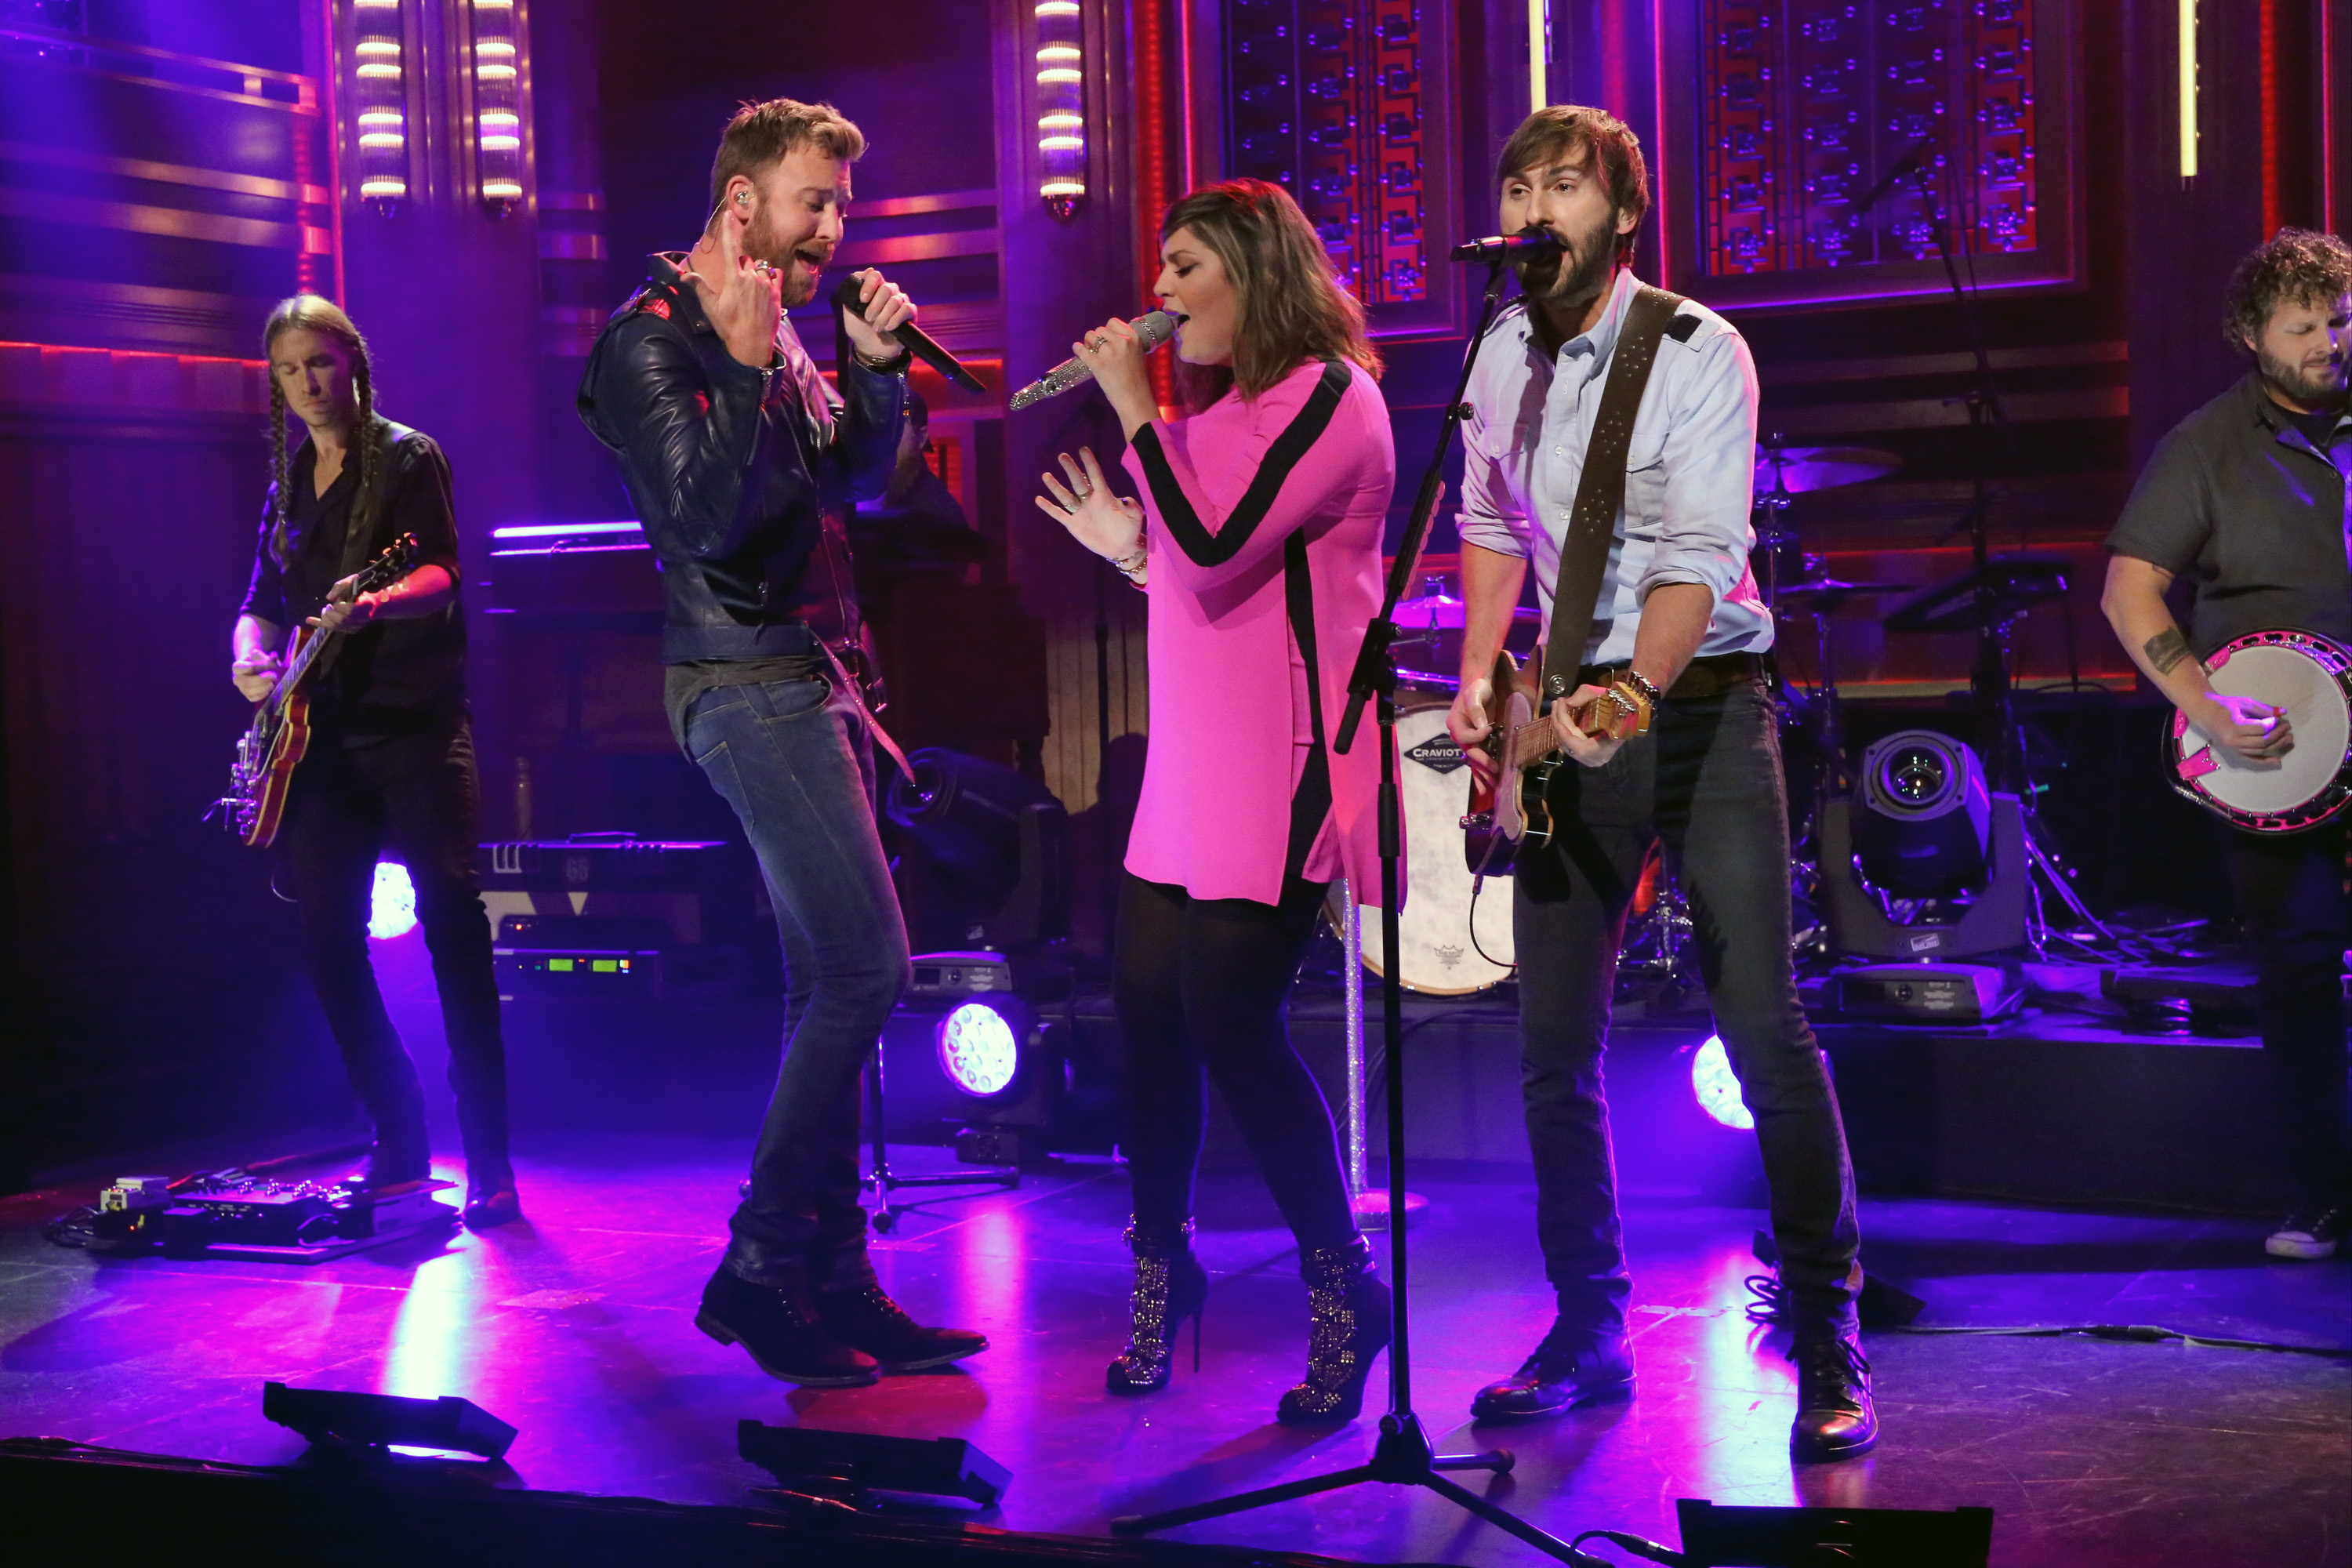 Hear Lady Antebellum Go 'Freestyle' on Genre-Bending New Single